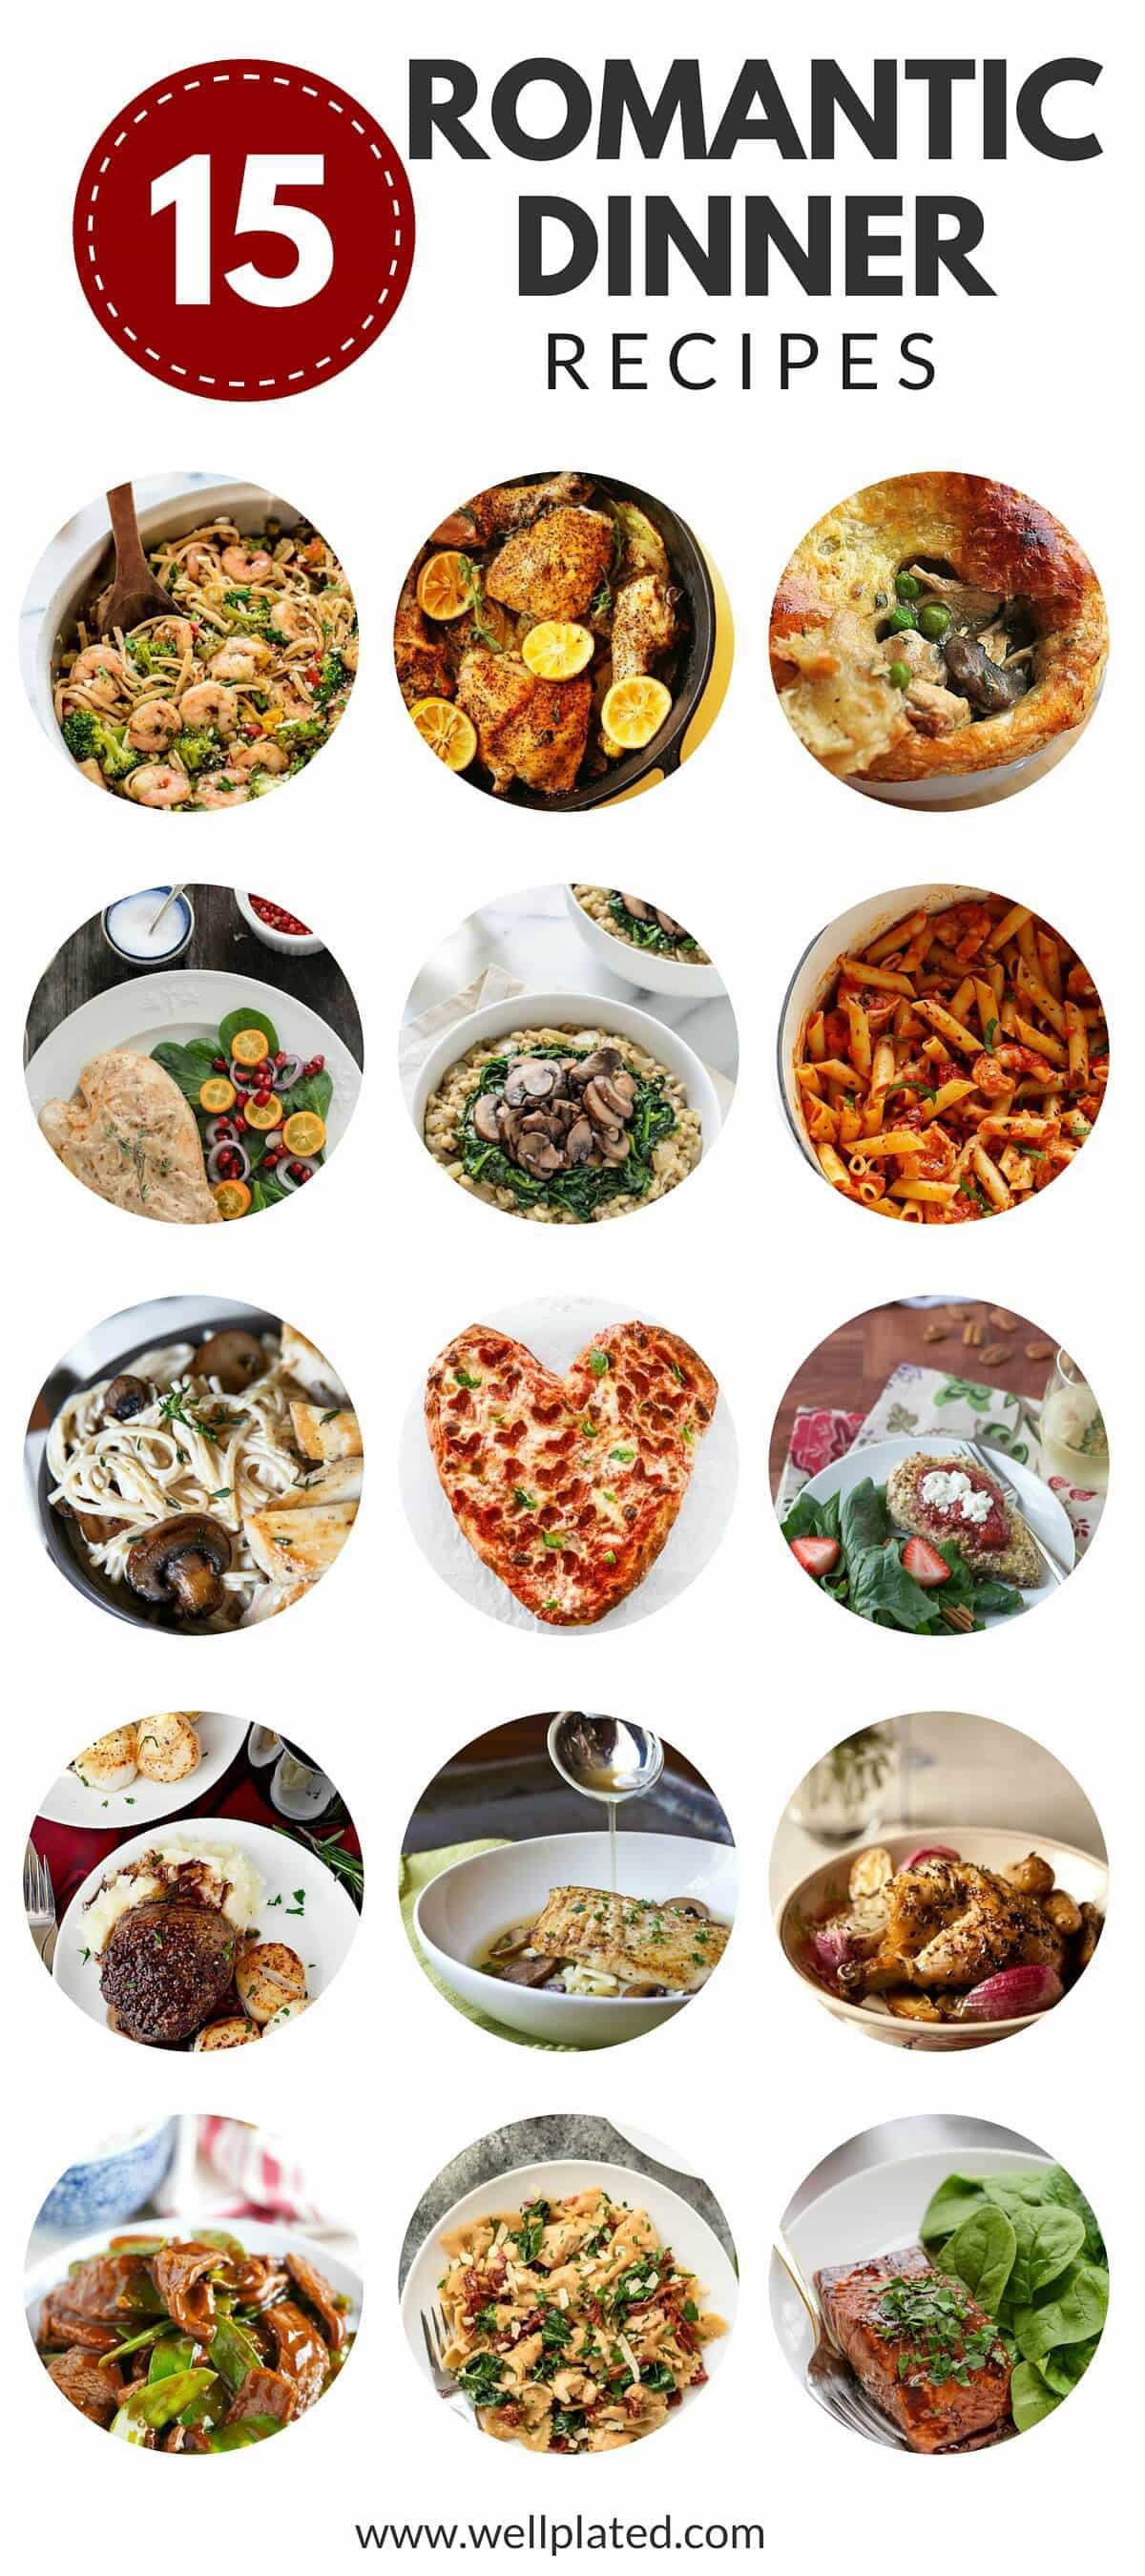 15 Date Night Dinners. Skip the crowd and expense of going out and try one of these easy, romantic dinners, perfect for a special night in!